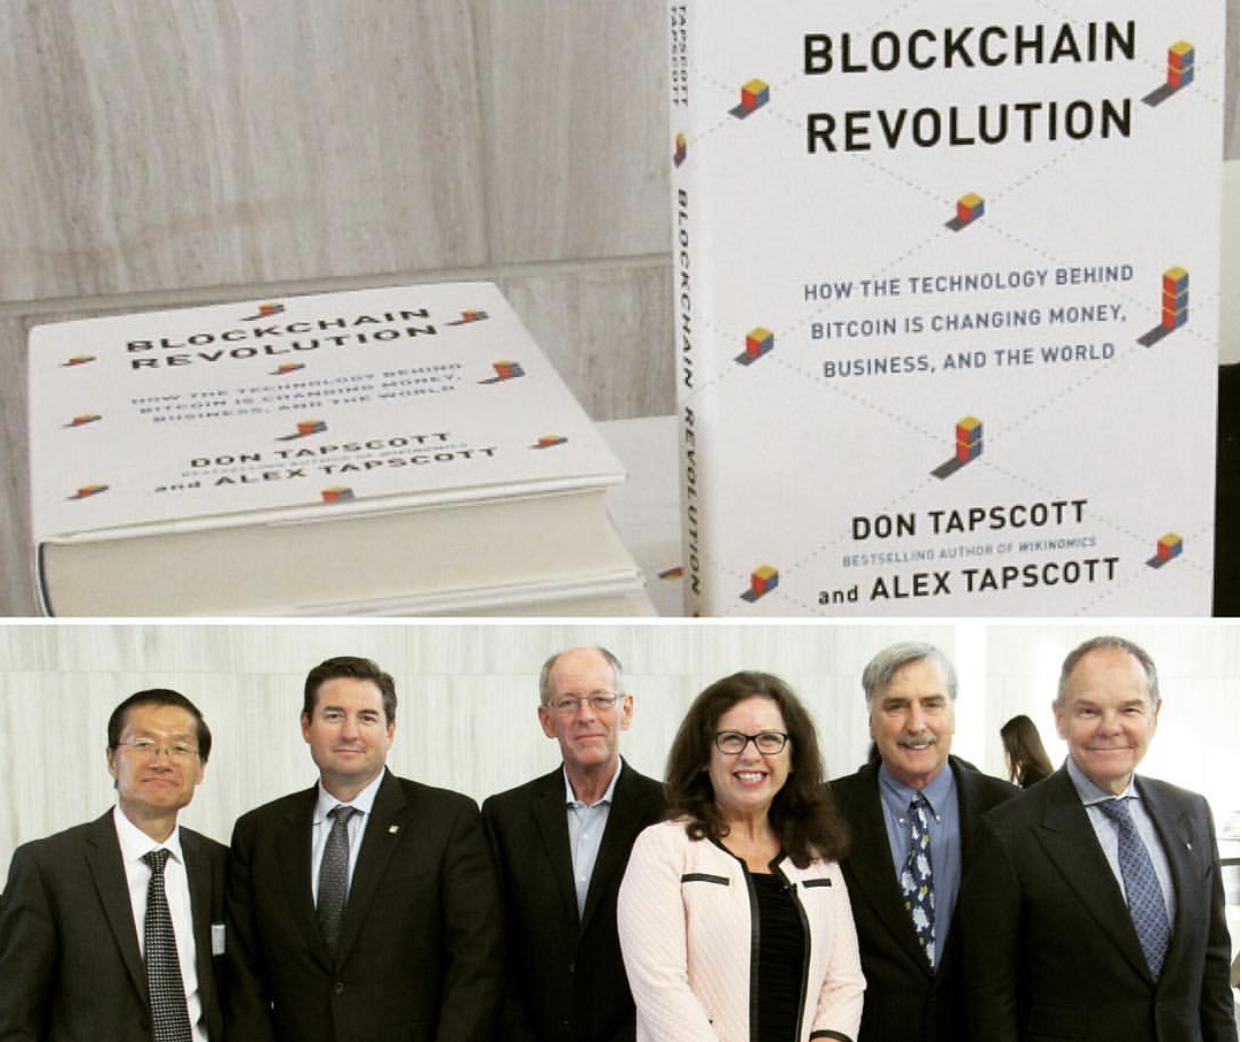 conference speakers with director and blockchain book